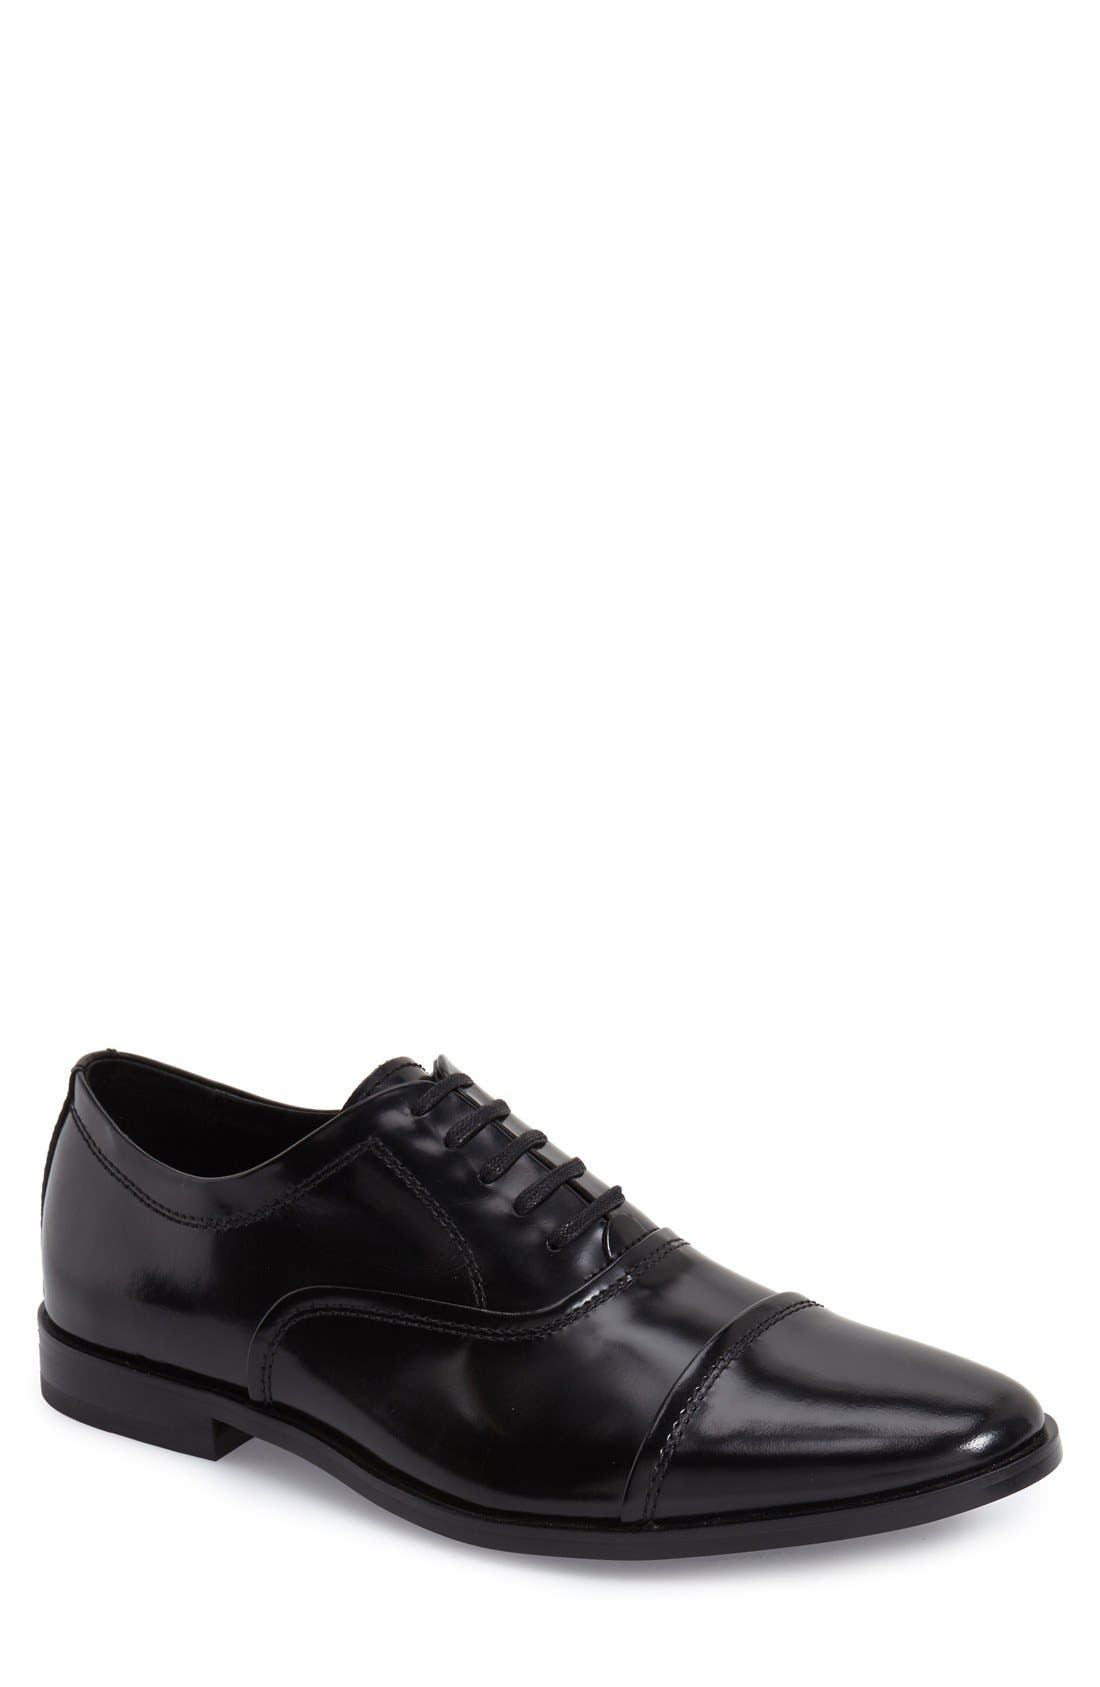 'Nino' Cap Toe Oxford,                             Main thumbnail 1, color,                             001